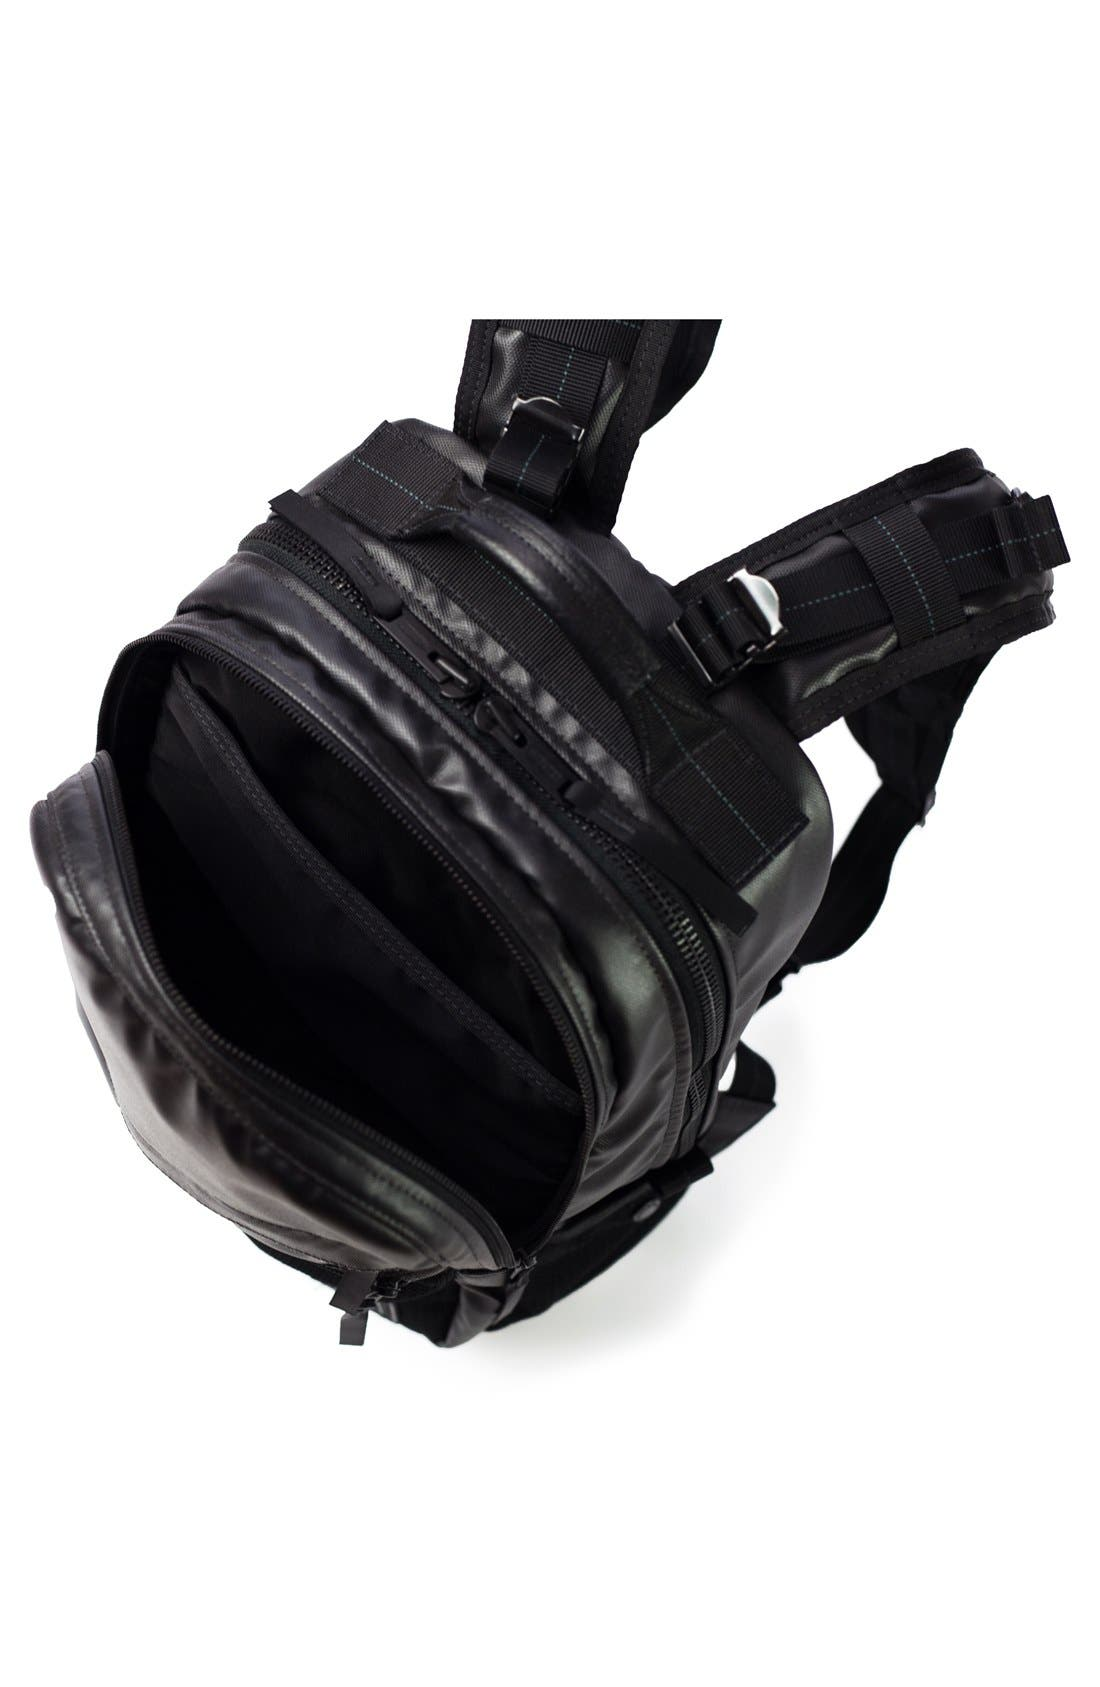 'NightHawk' Backpack,                             Alternate thumbnail 3, color,                             001